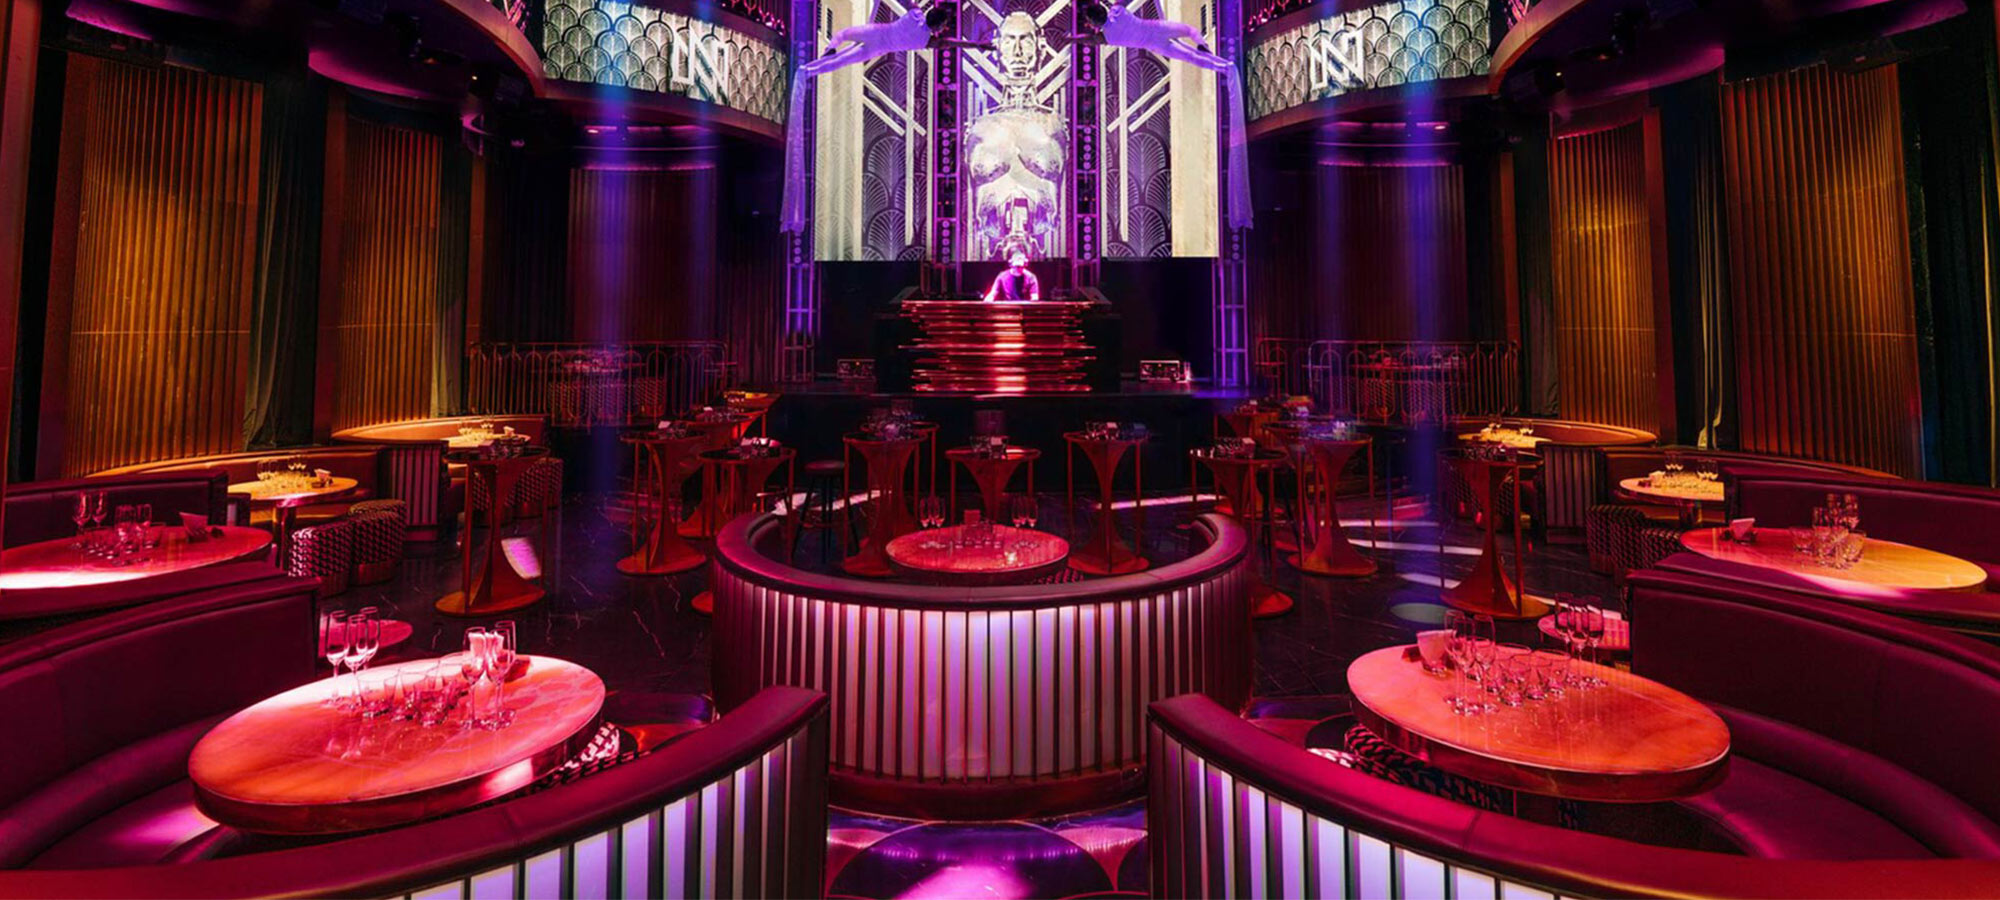 Must Visit Bars And Clubs In Ho Chi Minh City - Vietcetera